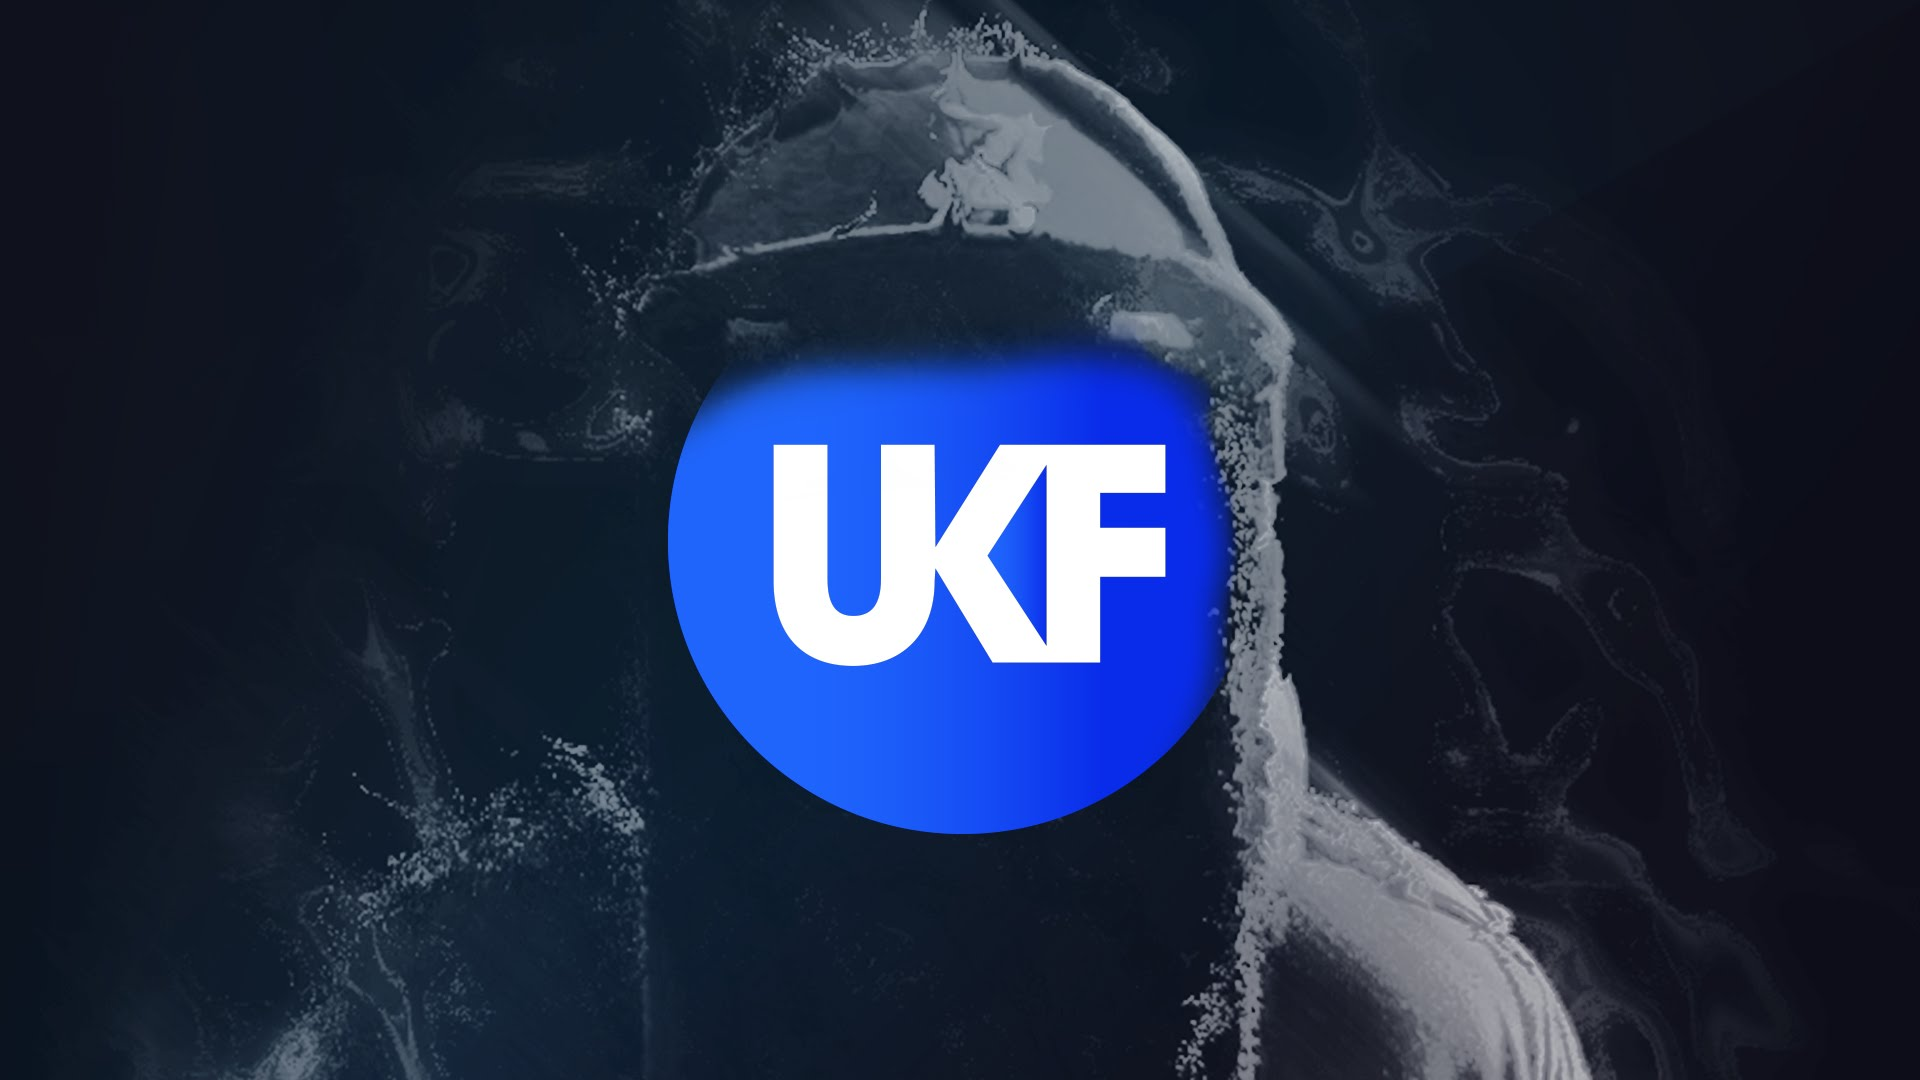 Ukf On Twitter At Iamtwine Drops Triggered Out 30th Via